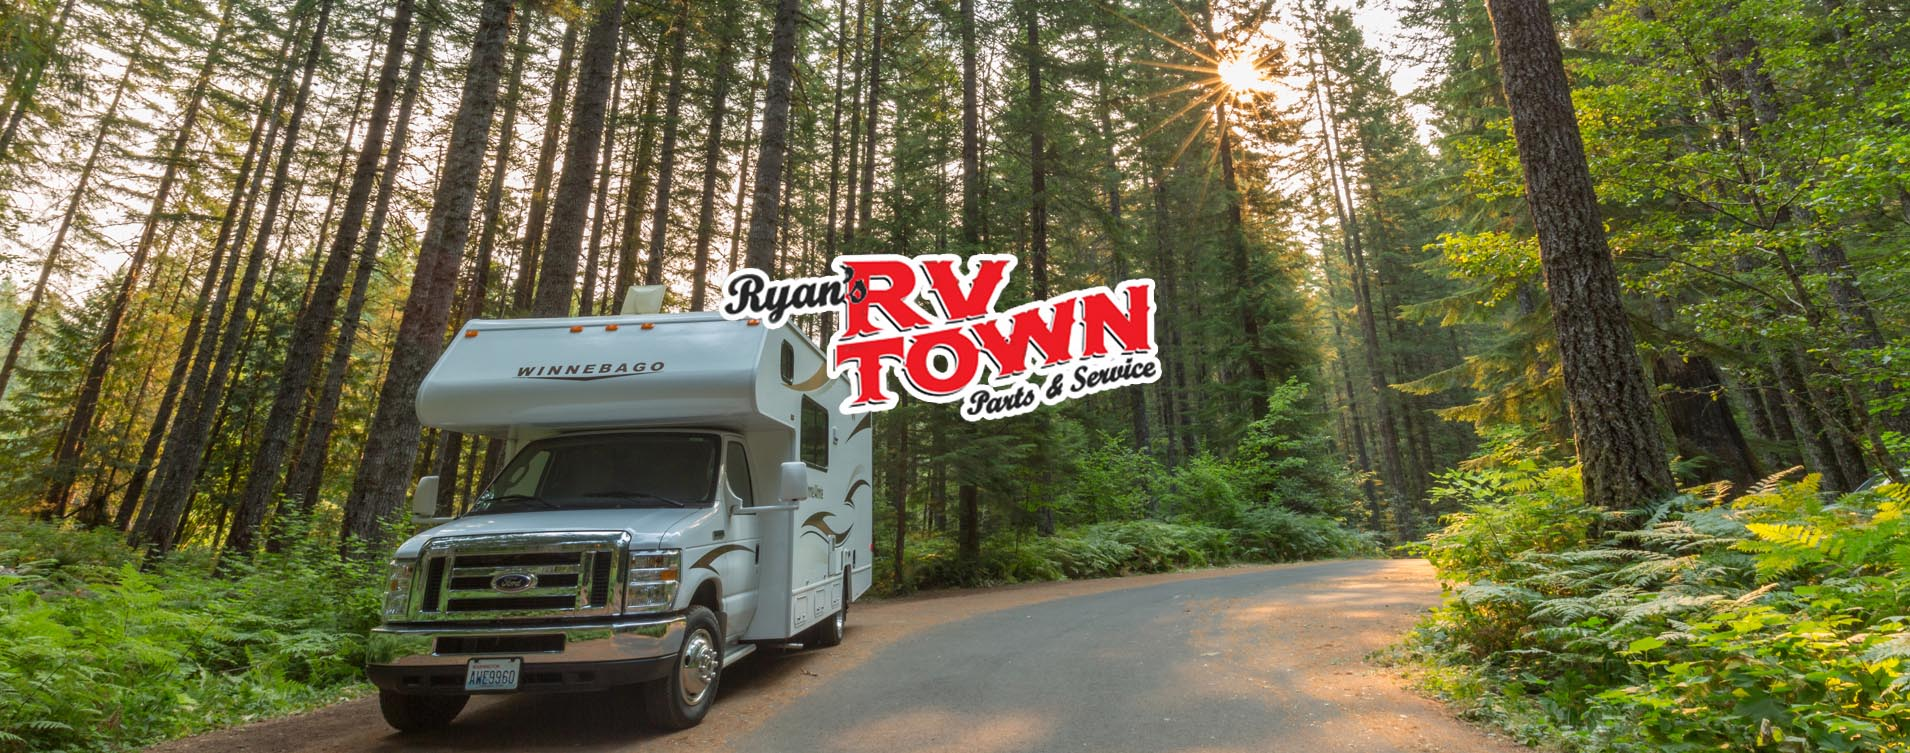 Ryan's RV Town | RVs Rentals and For Sale near Seattle, WA